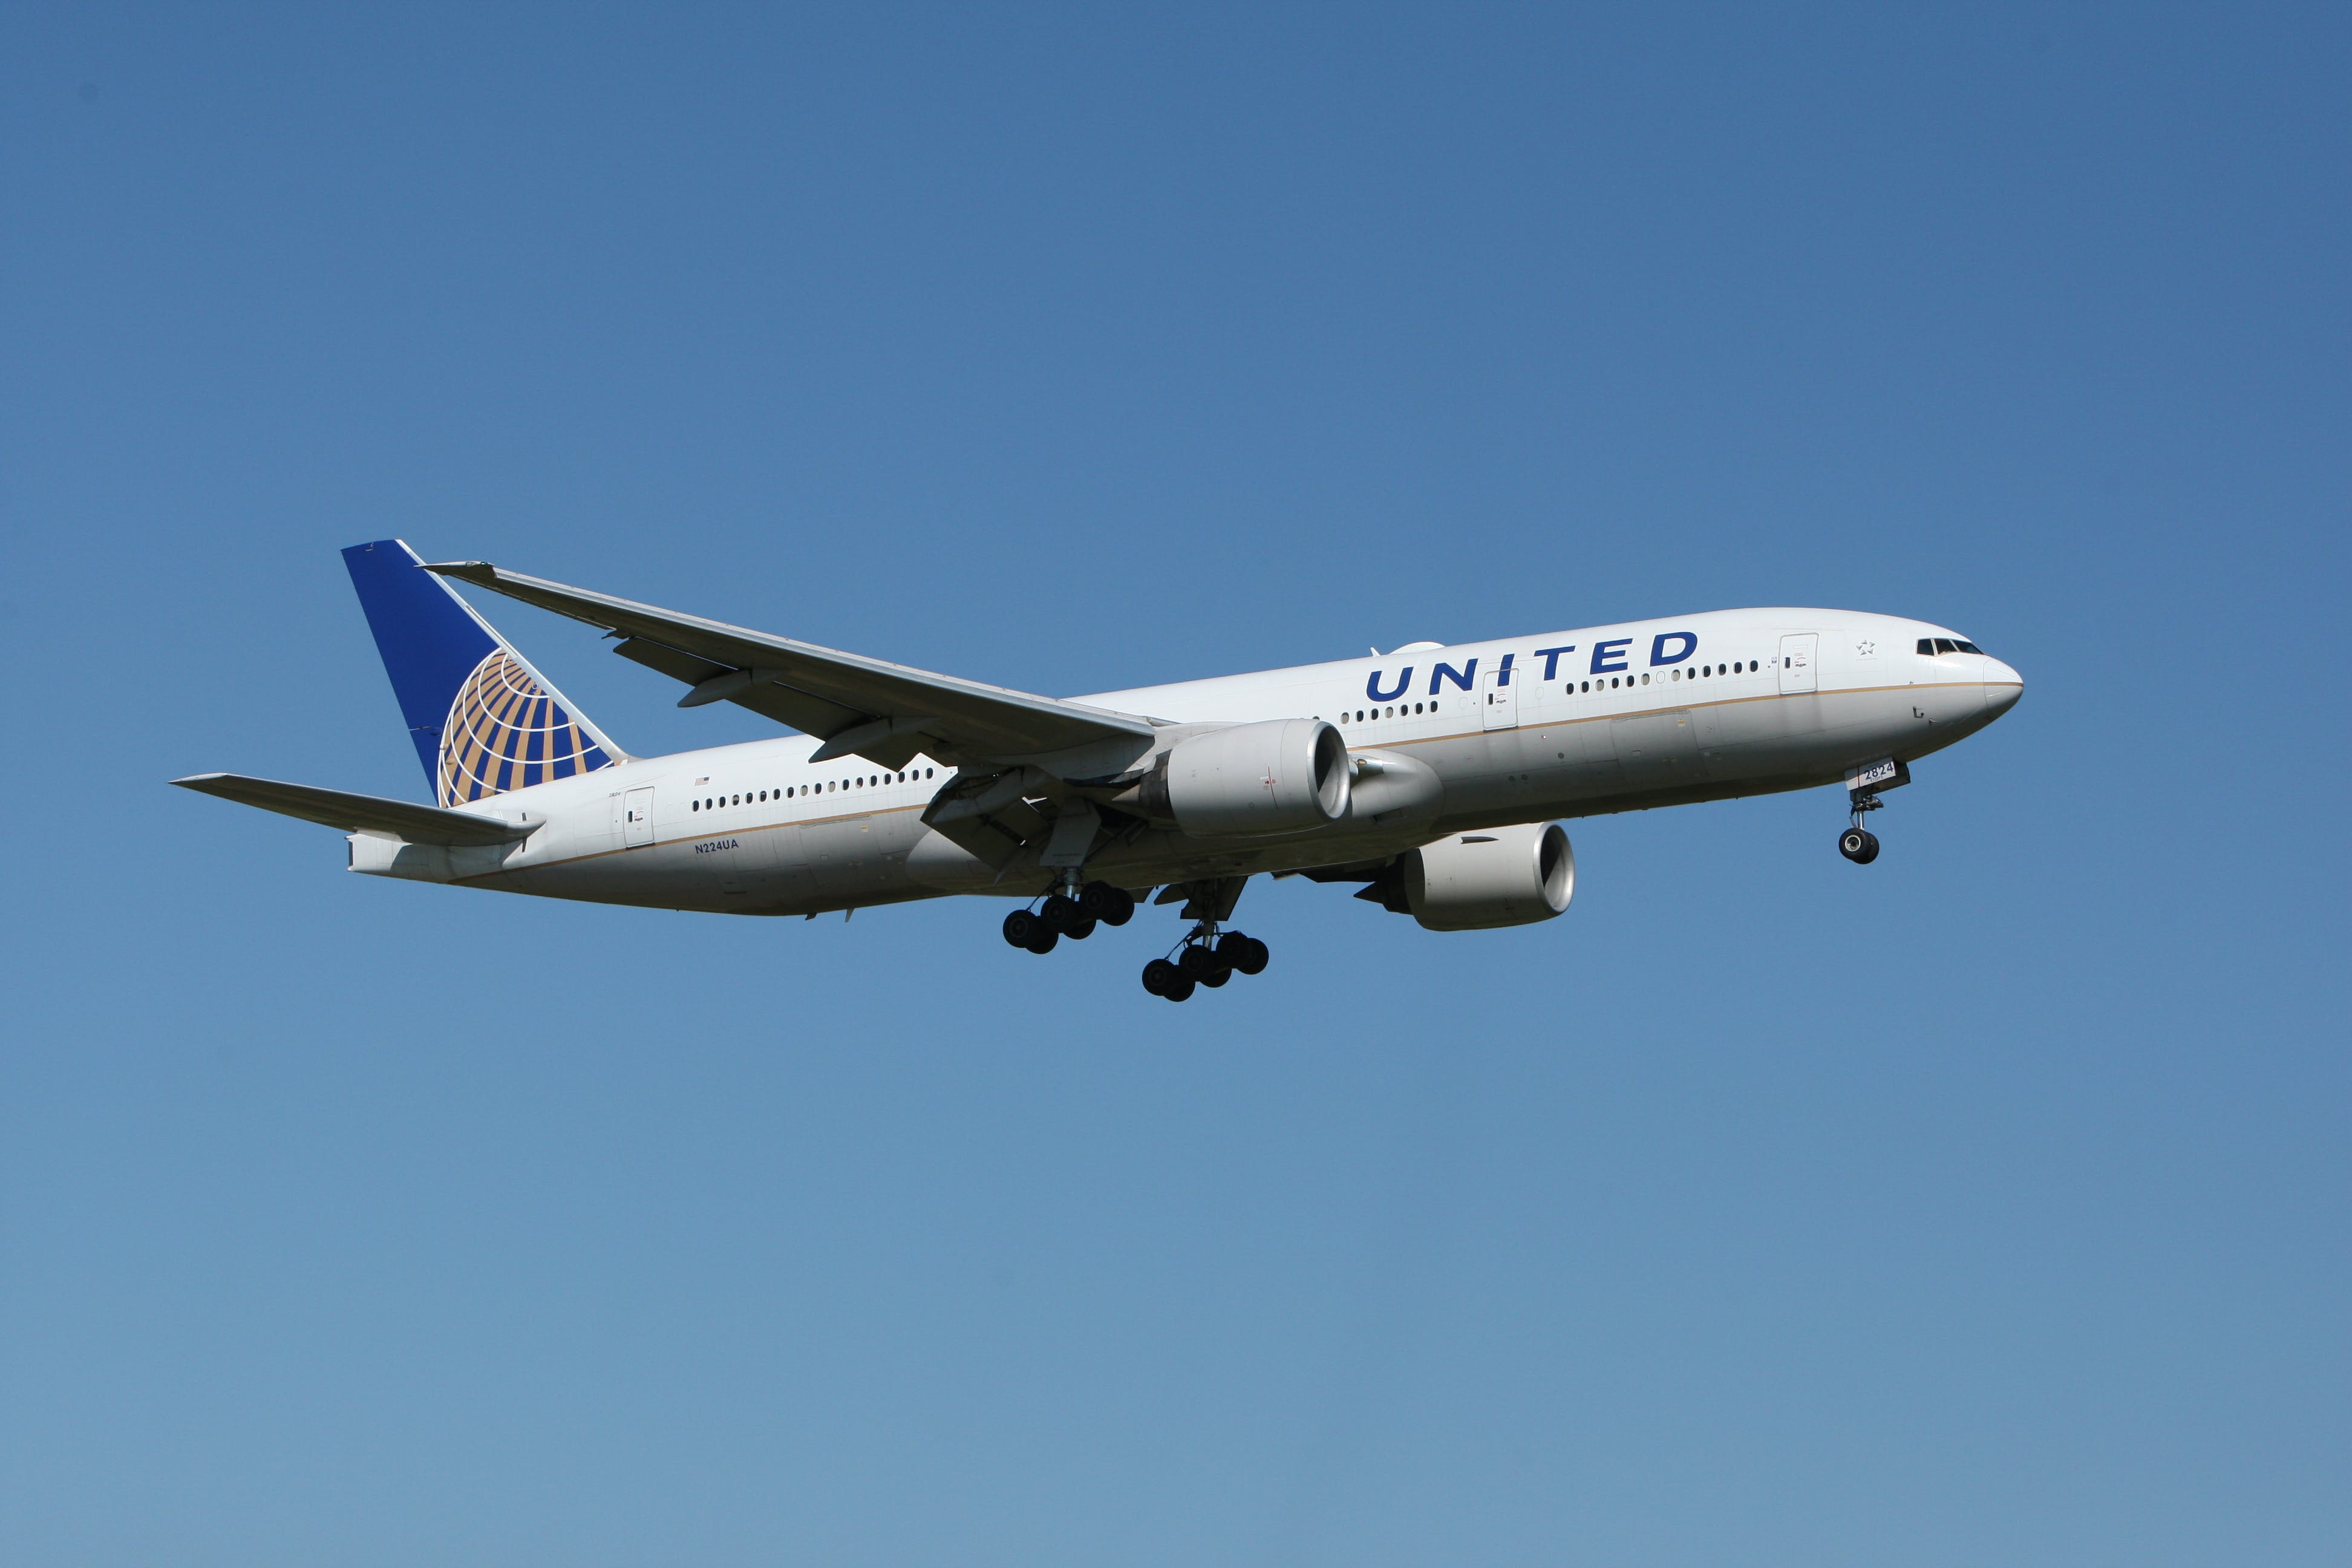 White United Airlines Plane